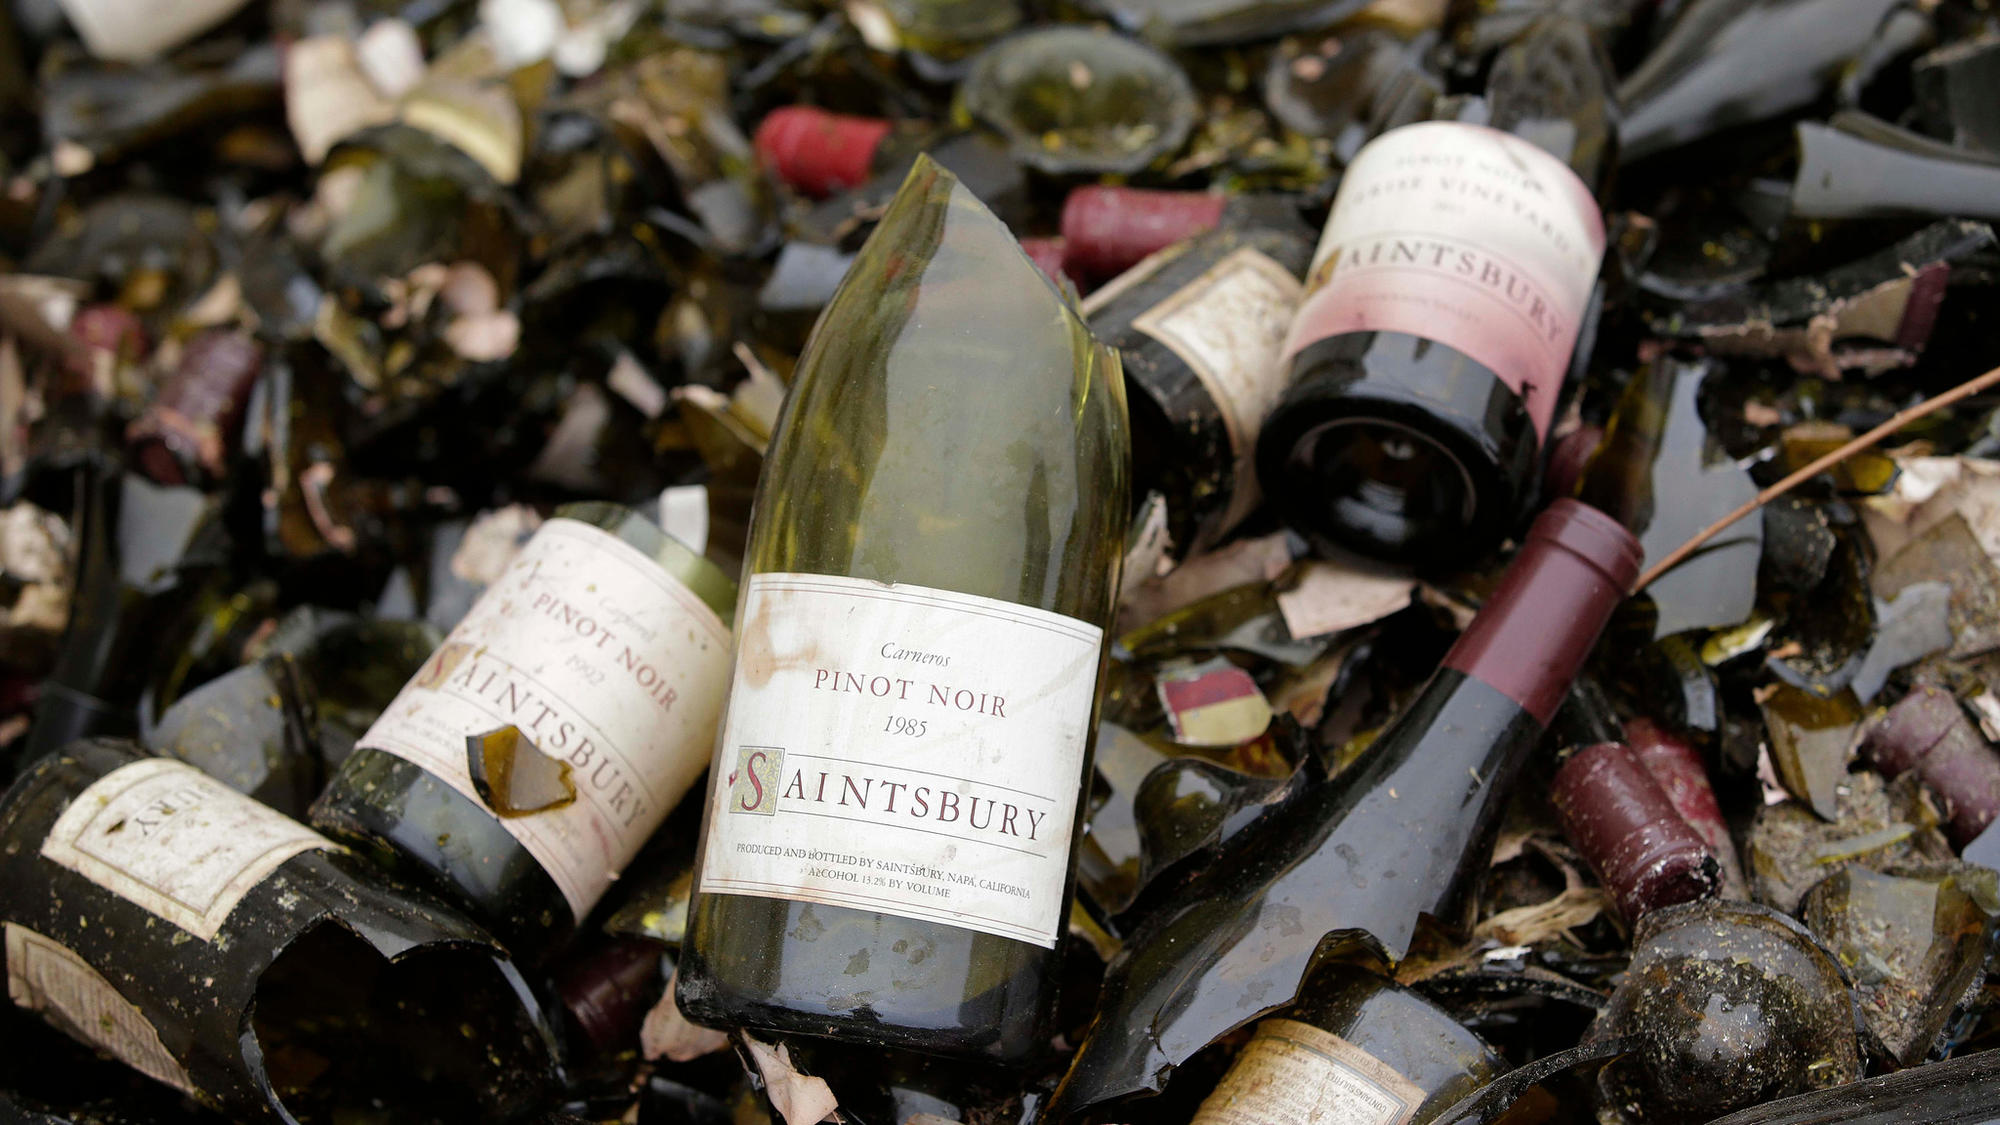 Get Ready For A Major Quake What To Do Before And During Big California Earthquakes 1 Turn Off Gas Vintage Bottles From The Wine Library At Saintsbury Winery In Napa Calif Are Tossed Bin After An August 2014 Temblor